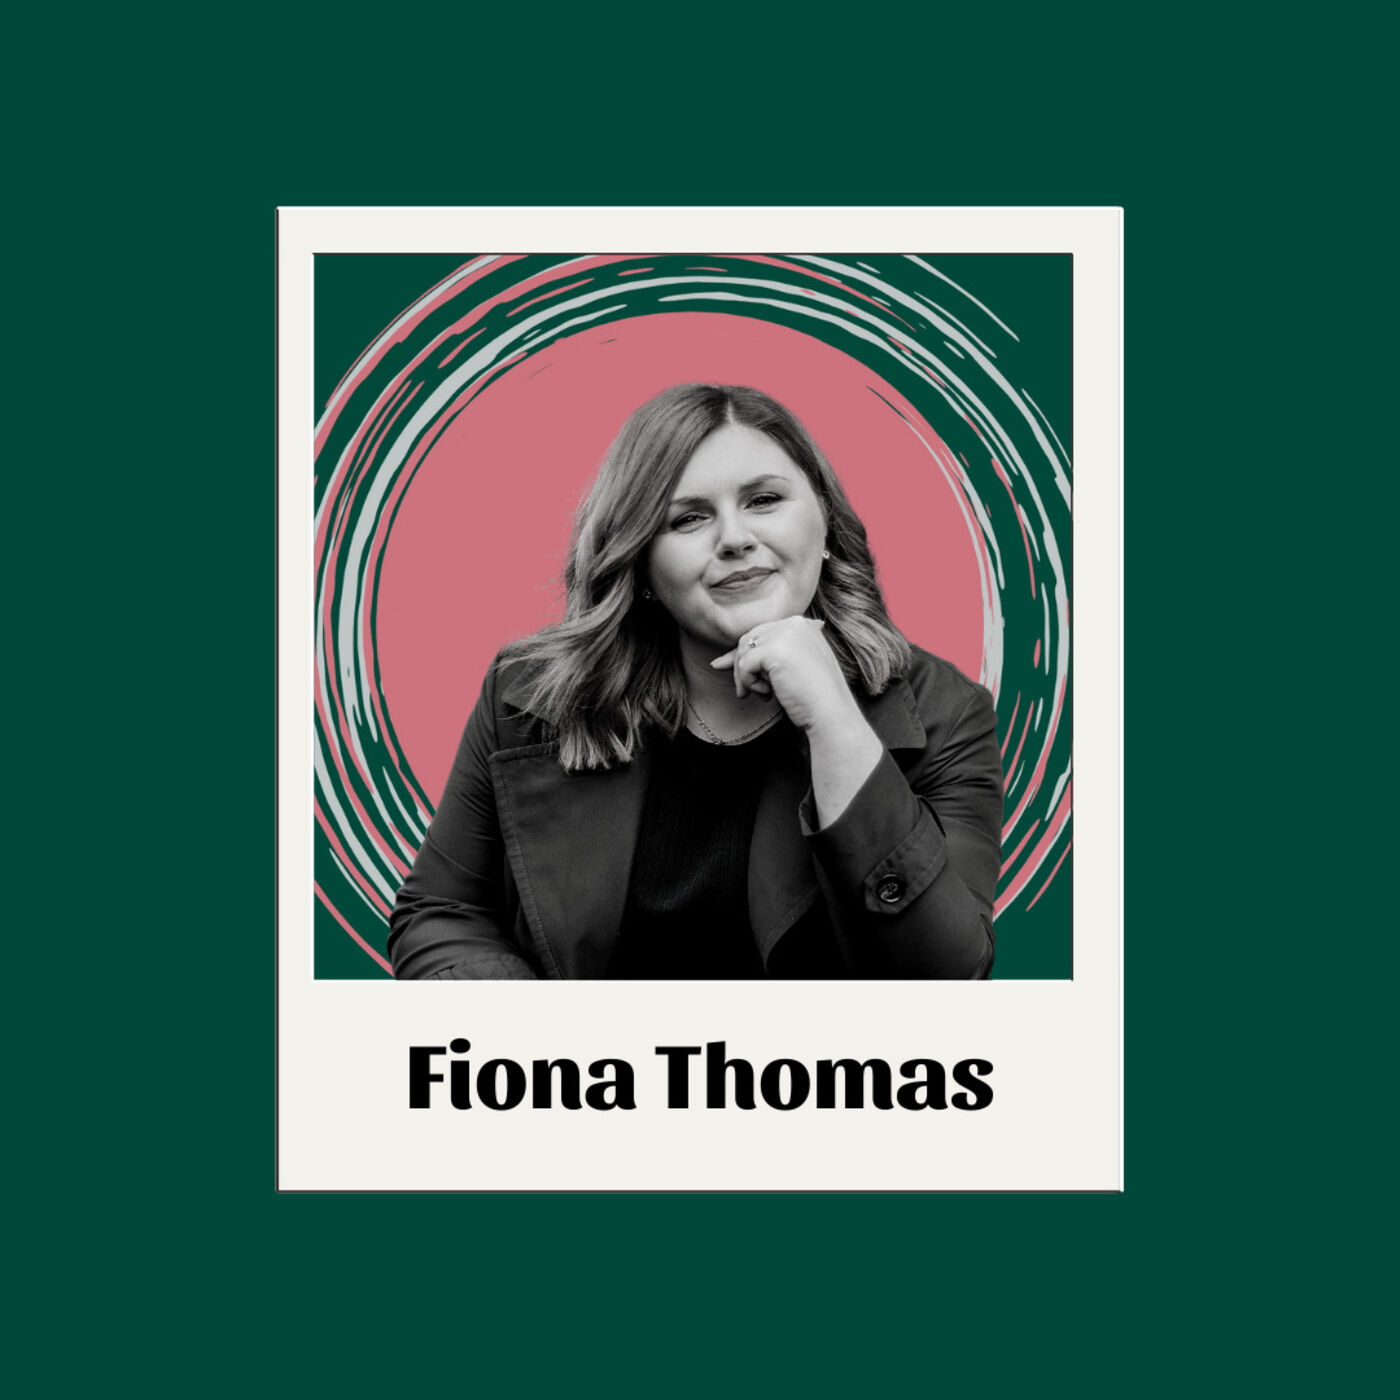 EP21 Fiona Thomas: Mental Health, Changing Career Paths and Creative Outlets